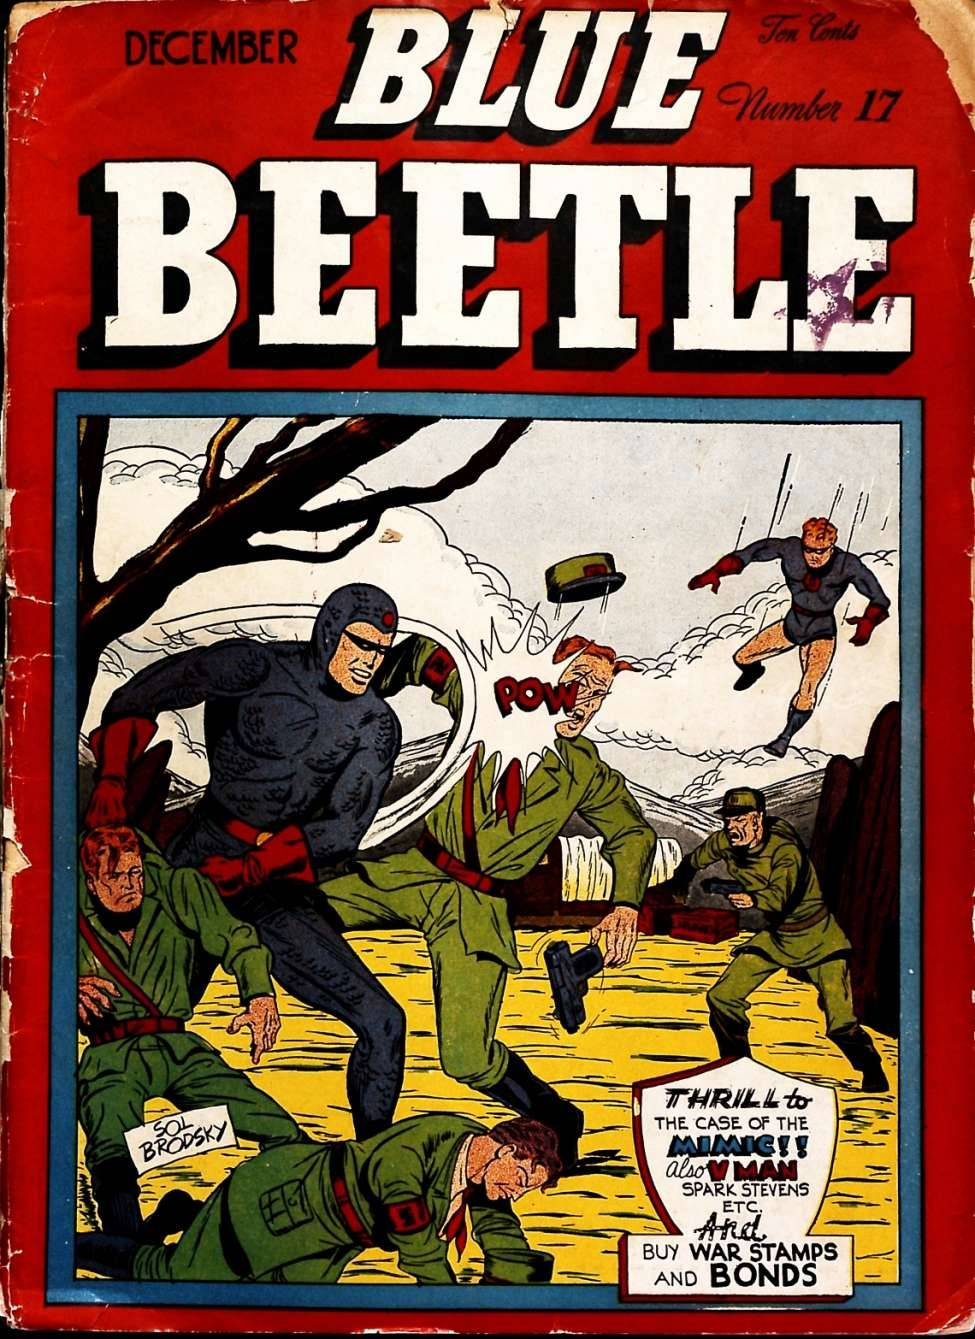 Public Domain Comic Books! This is an incredible archive containing hundreds of free comics, from westerns to superheroes. Check out titles like Women Outlaws, whose #1 sells for over $500, or the original Blue Beetle! Don't worry - no one is going to come after you for stealing. The intellectual property rights on all of these antique books expired and they are legal for you to download.